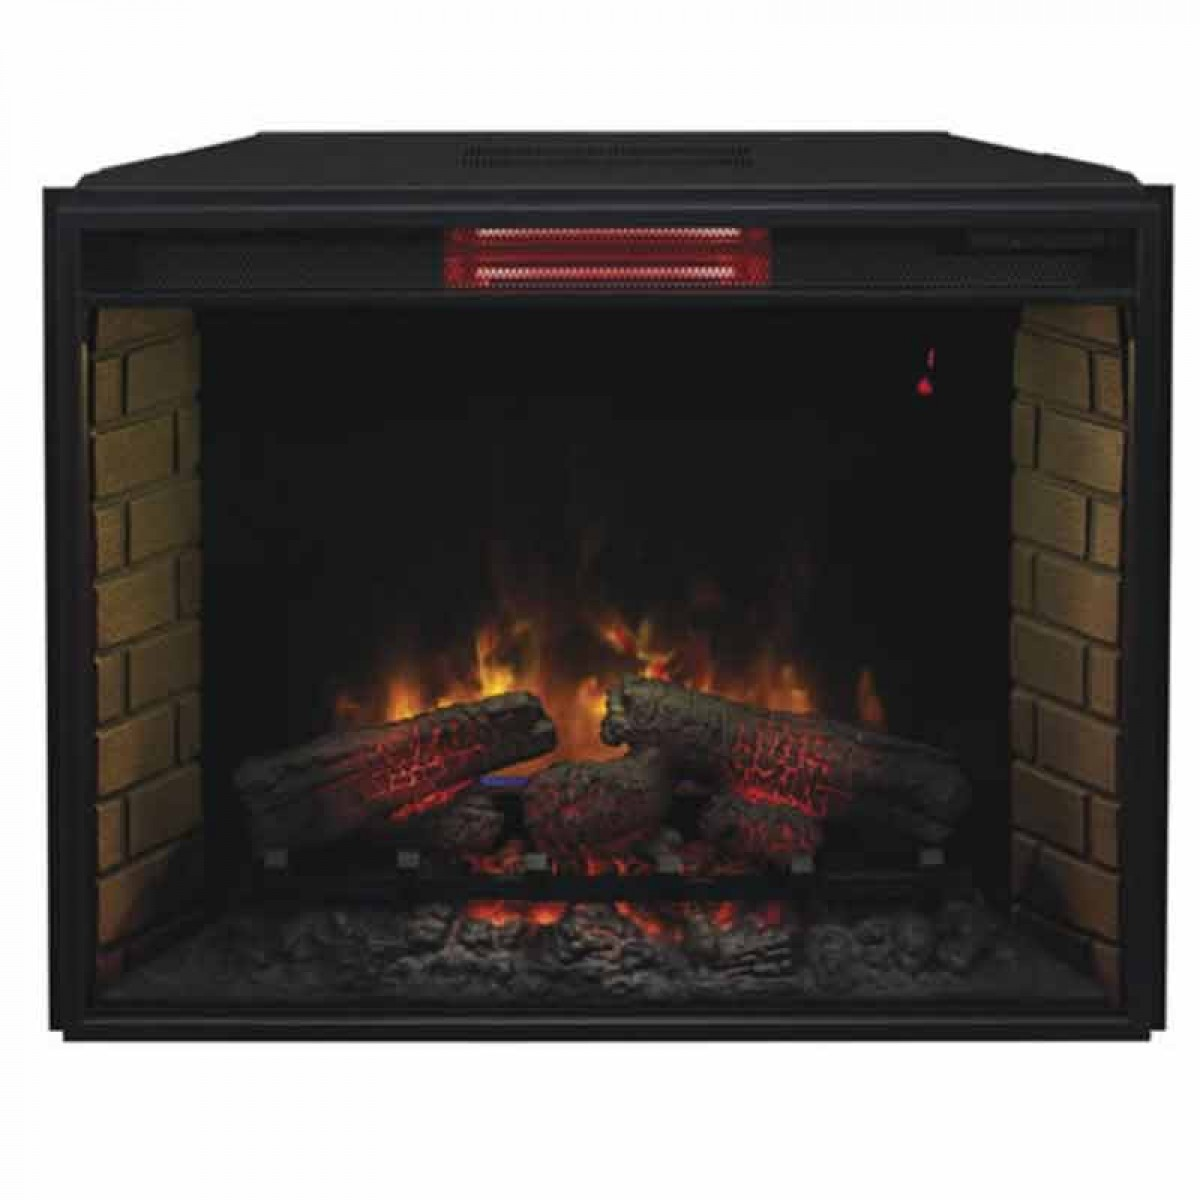 Classic Flame 33ii310gra 33 Spectrafire Plus Infrared Insert With Safer Plug At Ibuyfireplaces